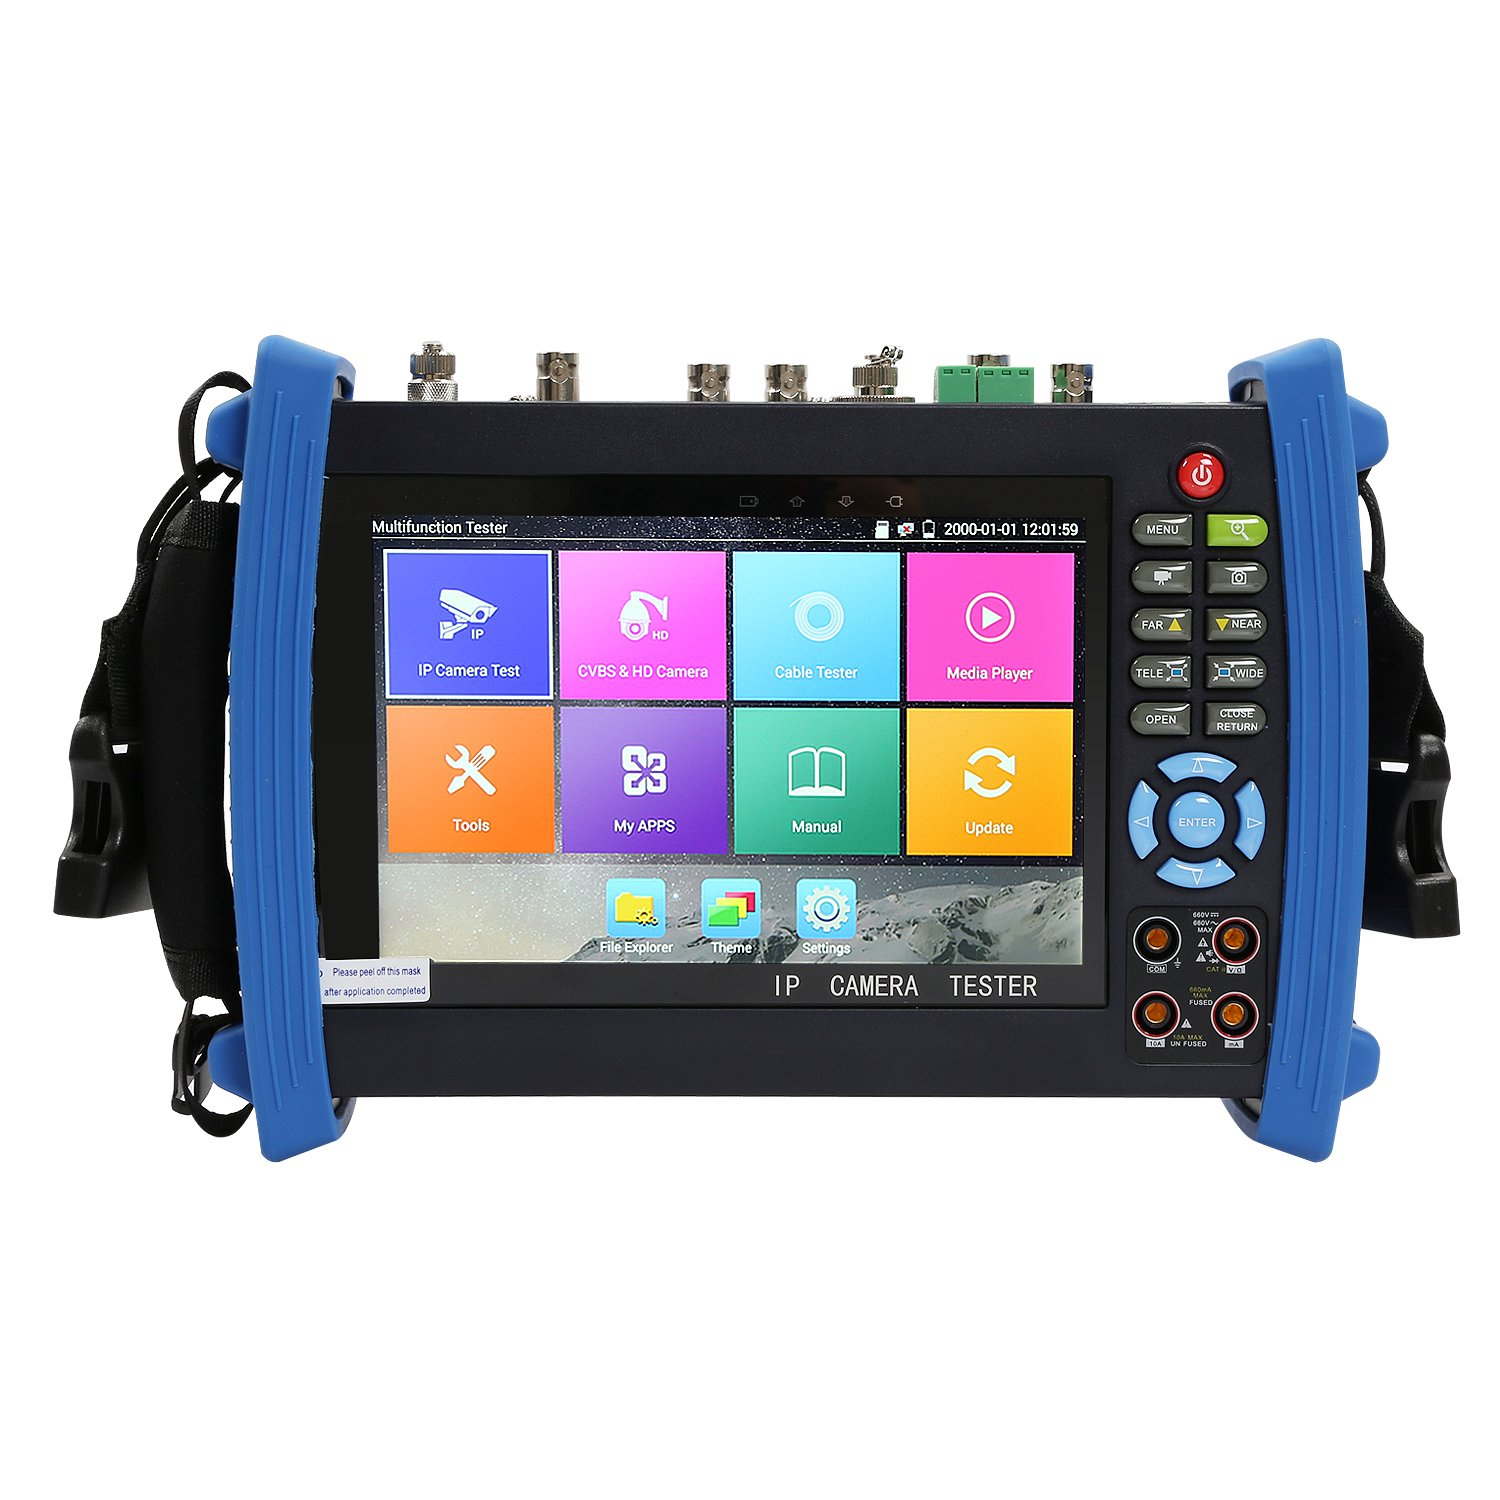 Wsdcam 7 Inch All in One 1080p Retina Display IP Camera Tester Security  CCTV Tester Monitor with SDI/TVI/AHD/CVI/TDR/OPM/VFL/POE/WIFI/Multimeter/4K